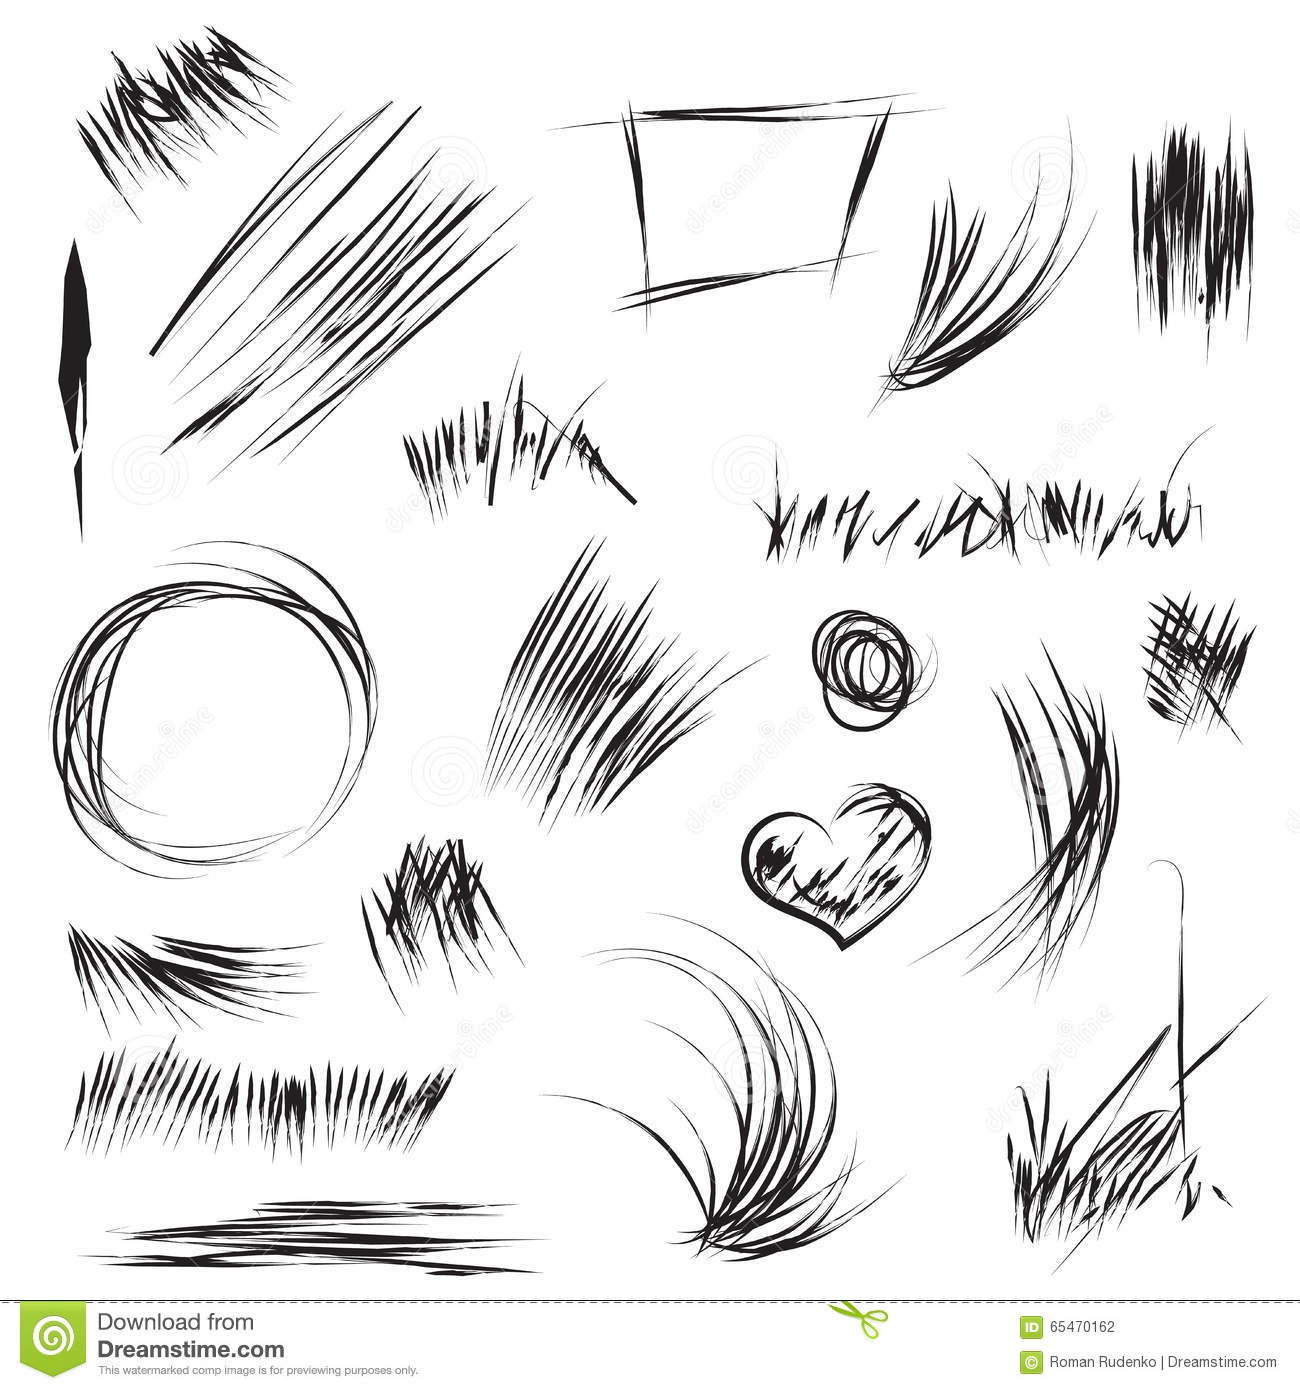 Hand drawn scribble and sketch shapes in vector abstract line and scribble for texture art pensil drawing with scratch